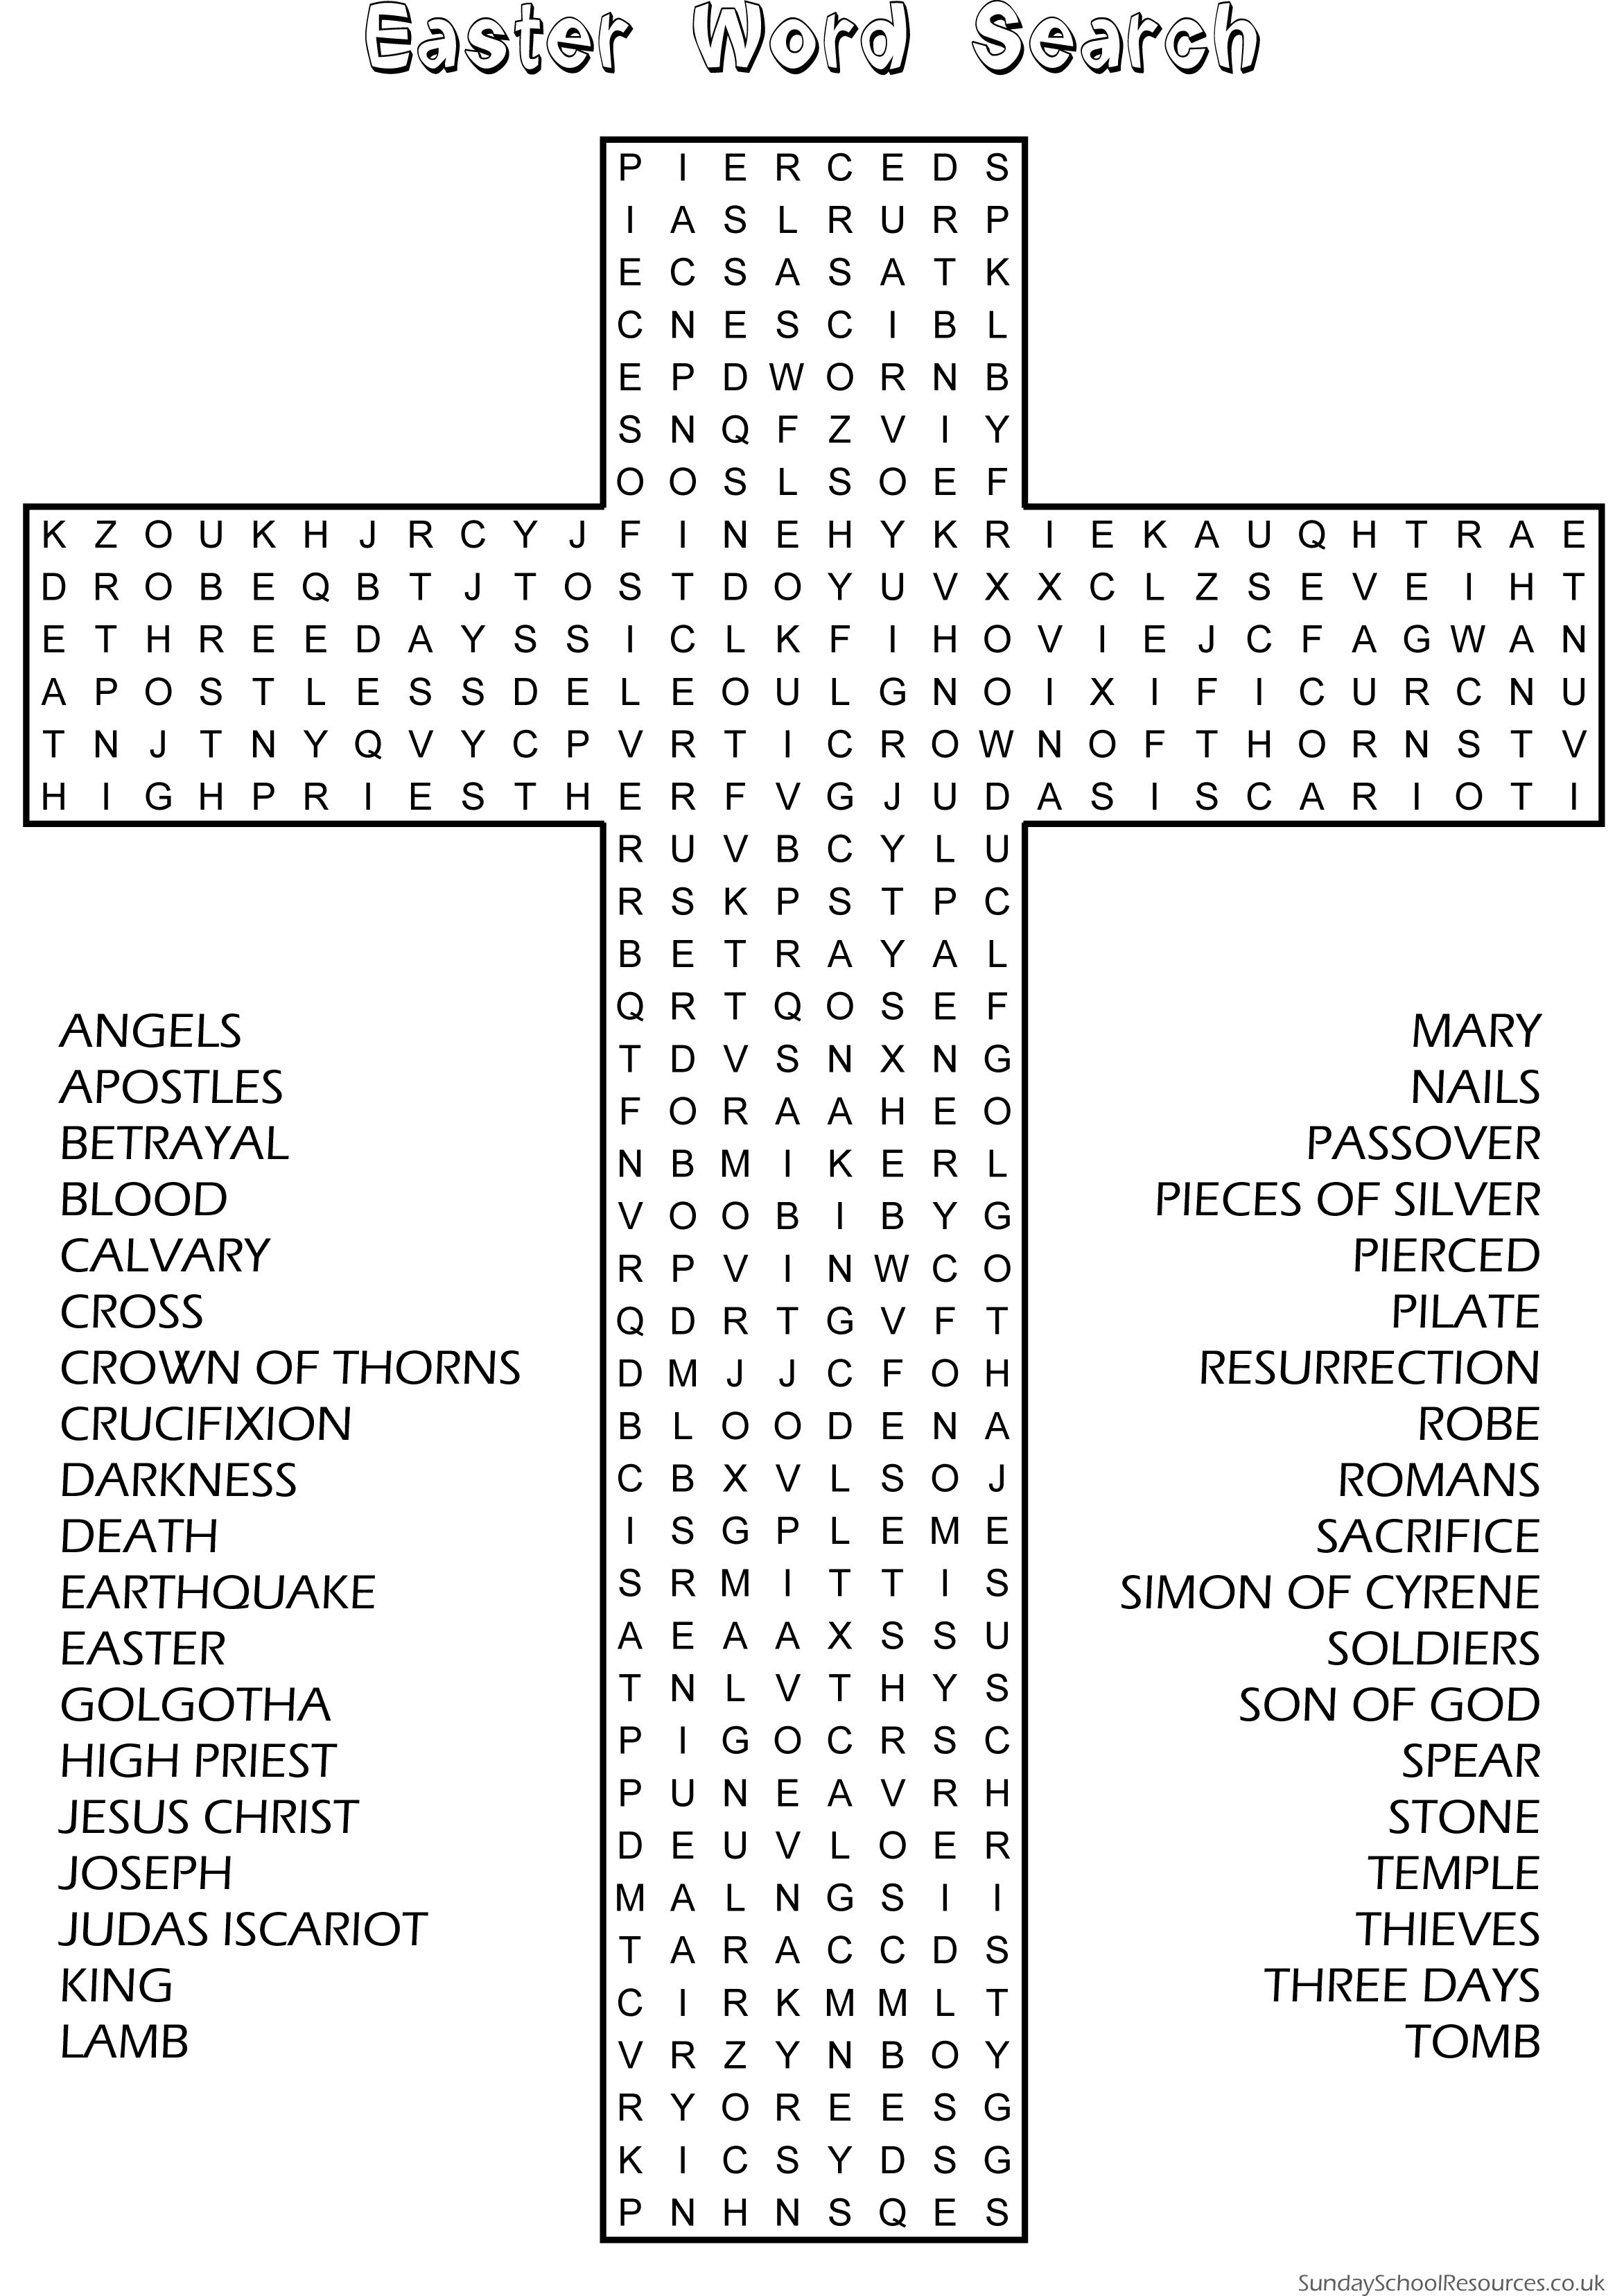 Easter Word Search - Sunday School Activity Website Has Good - Free Printable Religious Easter Word Searches